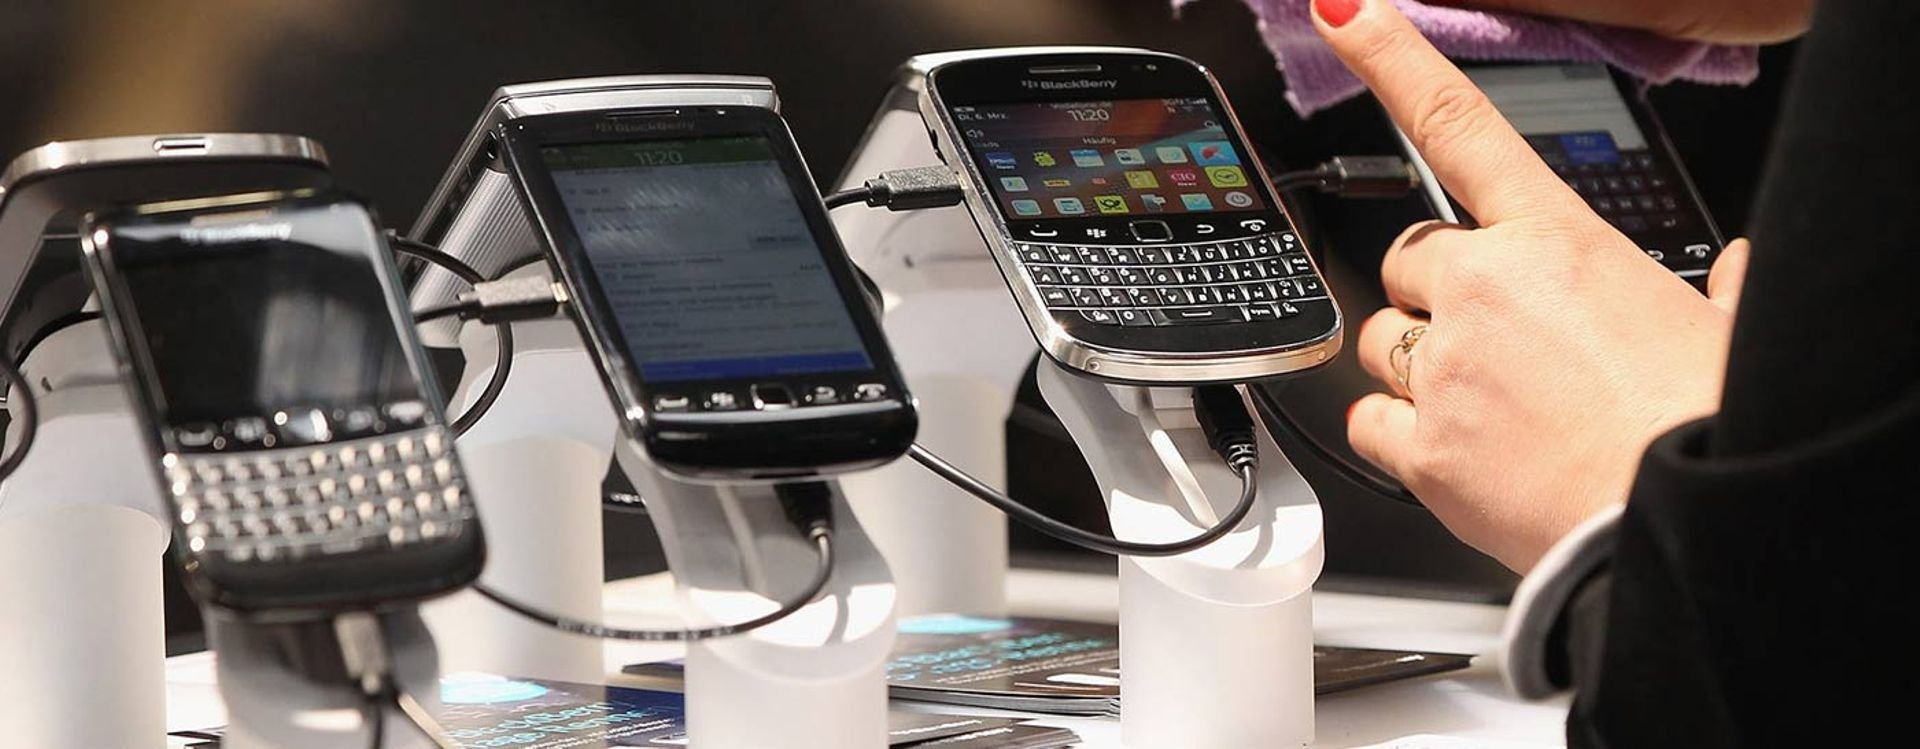 Did BlackBerry really stop manufacturing phones?